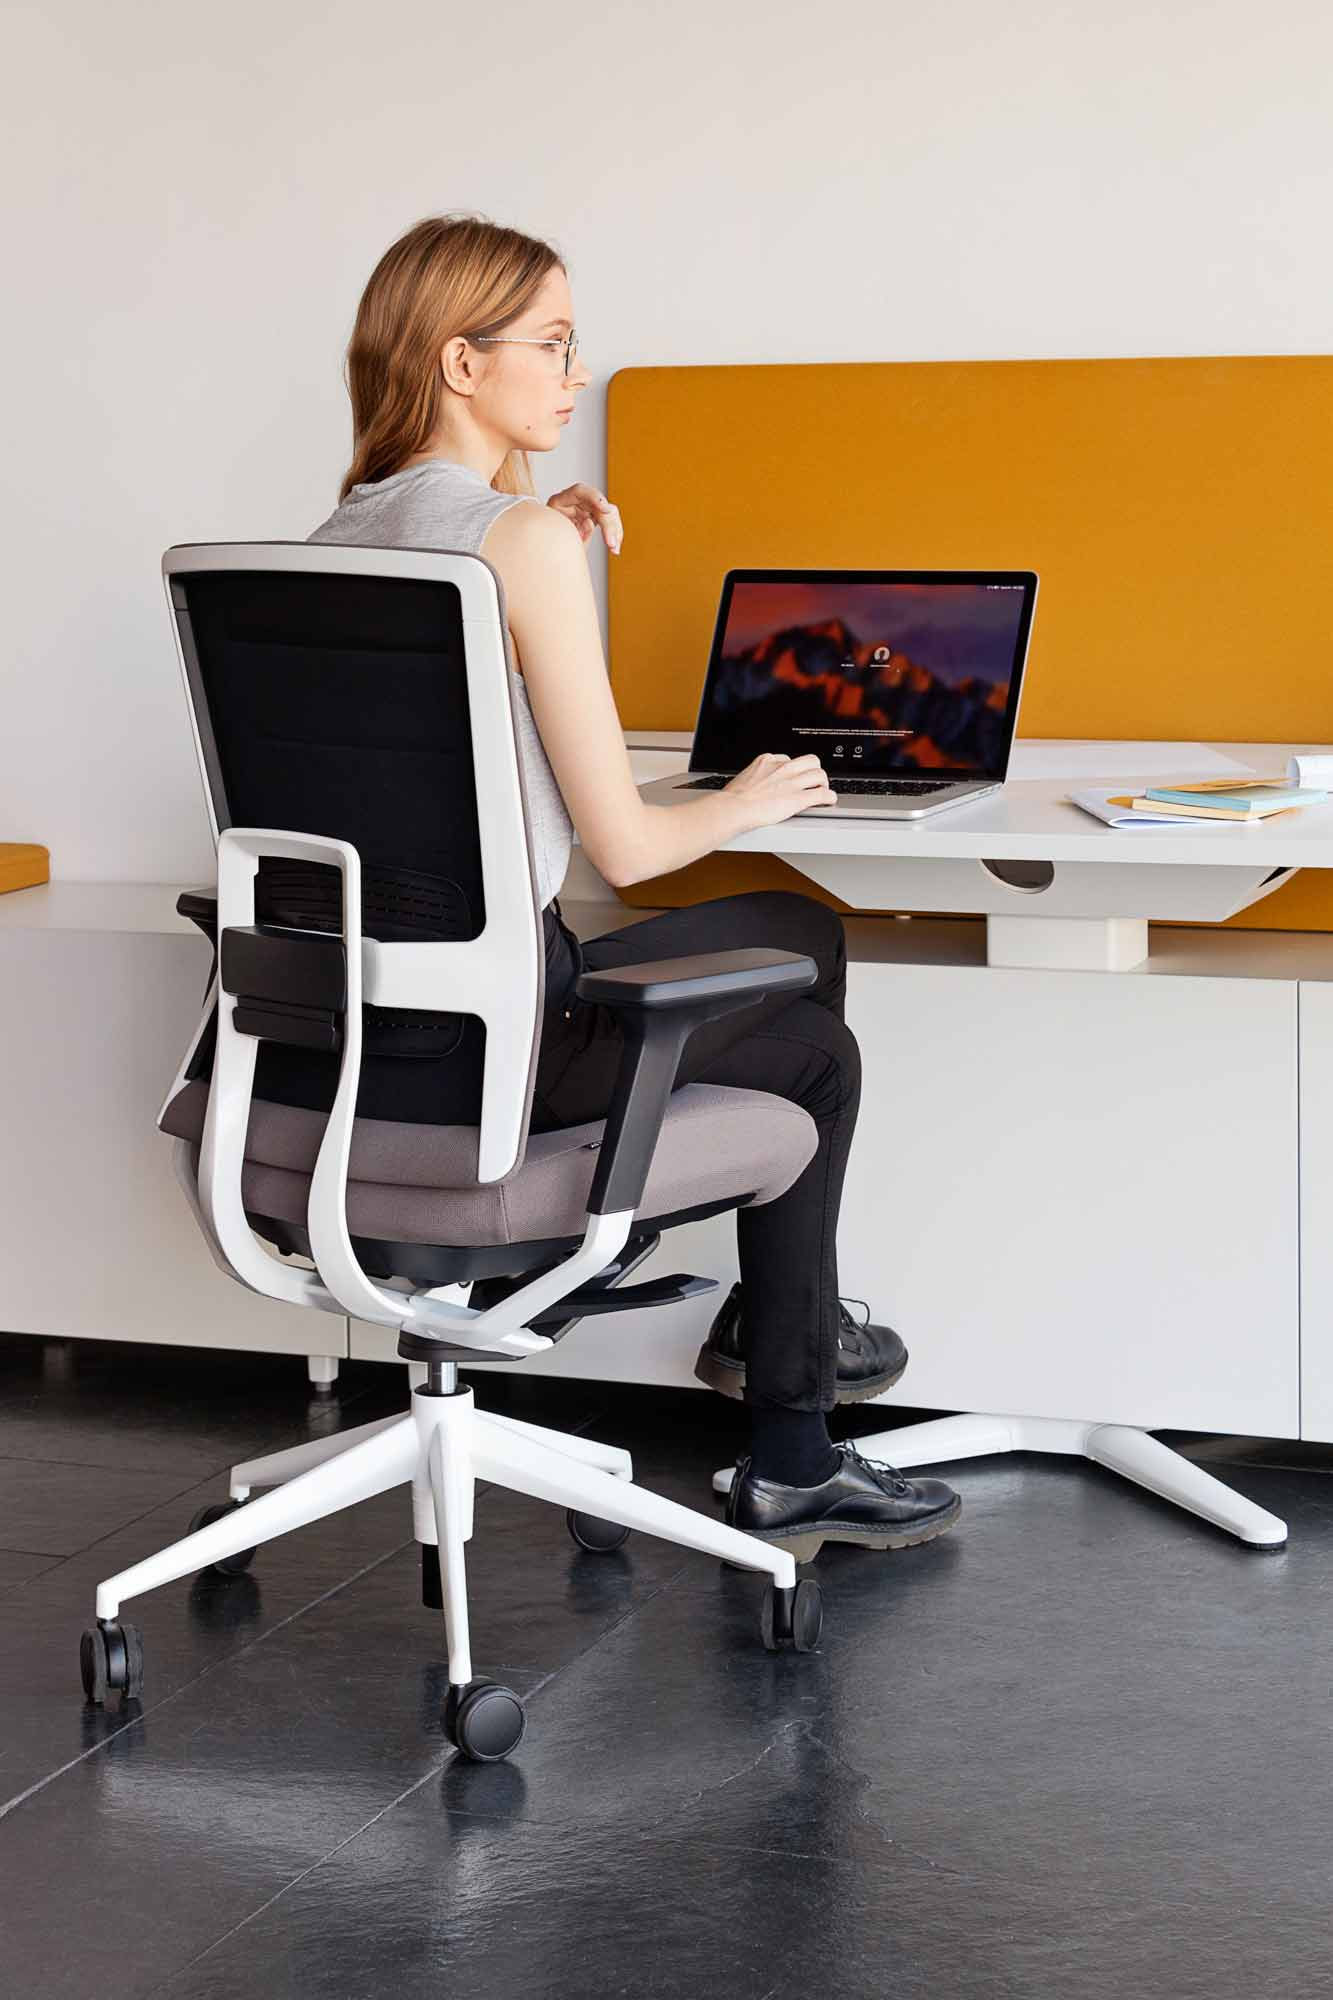 desk power operative executive tables tnkflex chair white brown mobility cabinets design height colorful adjustable personal computer laptop workplace excellence masof actiu